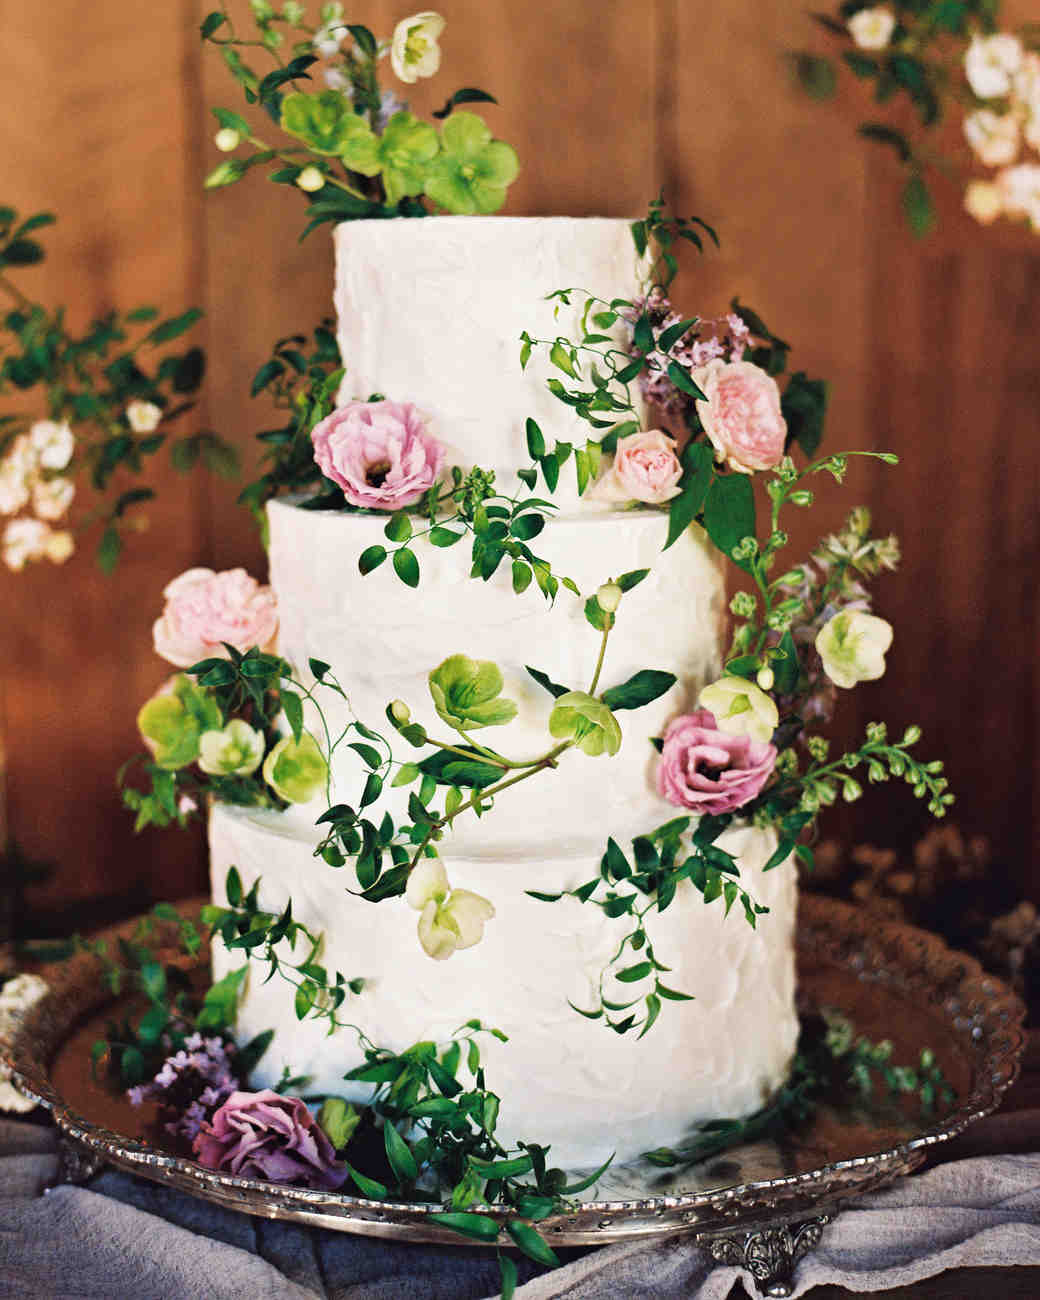 62 fresh floral wedding cakes martha stewart weddings. Black Bedroom Furniture Sets. Home Design Ideas